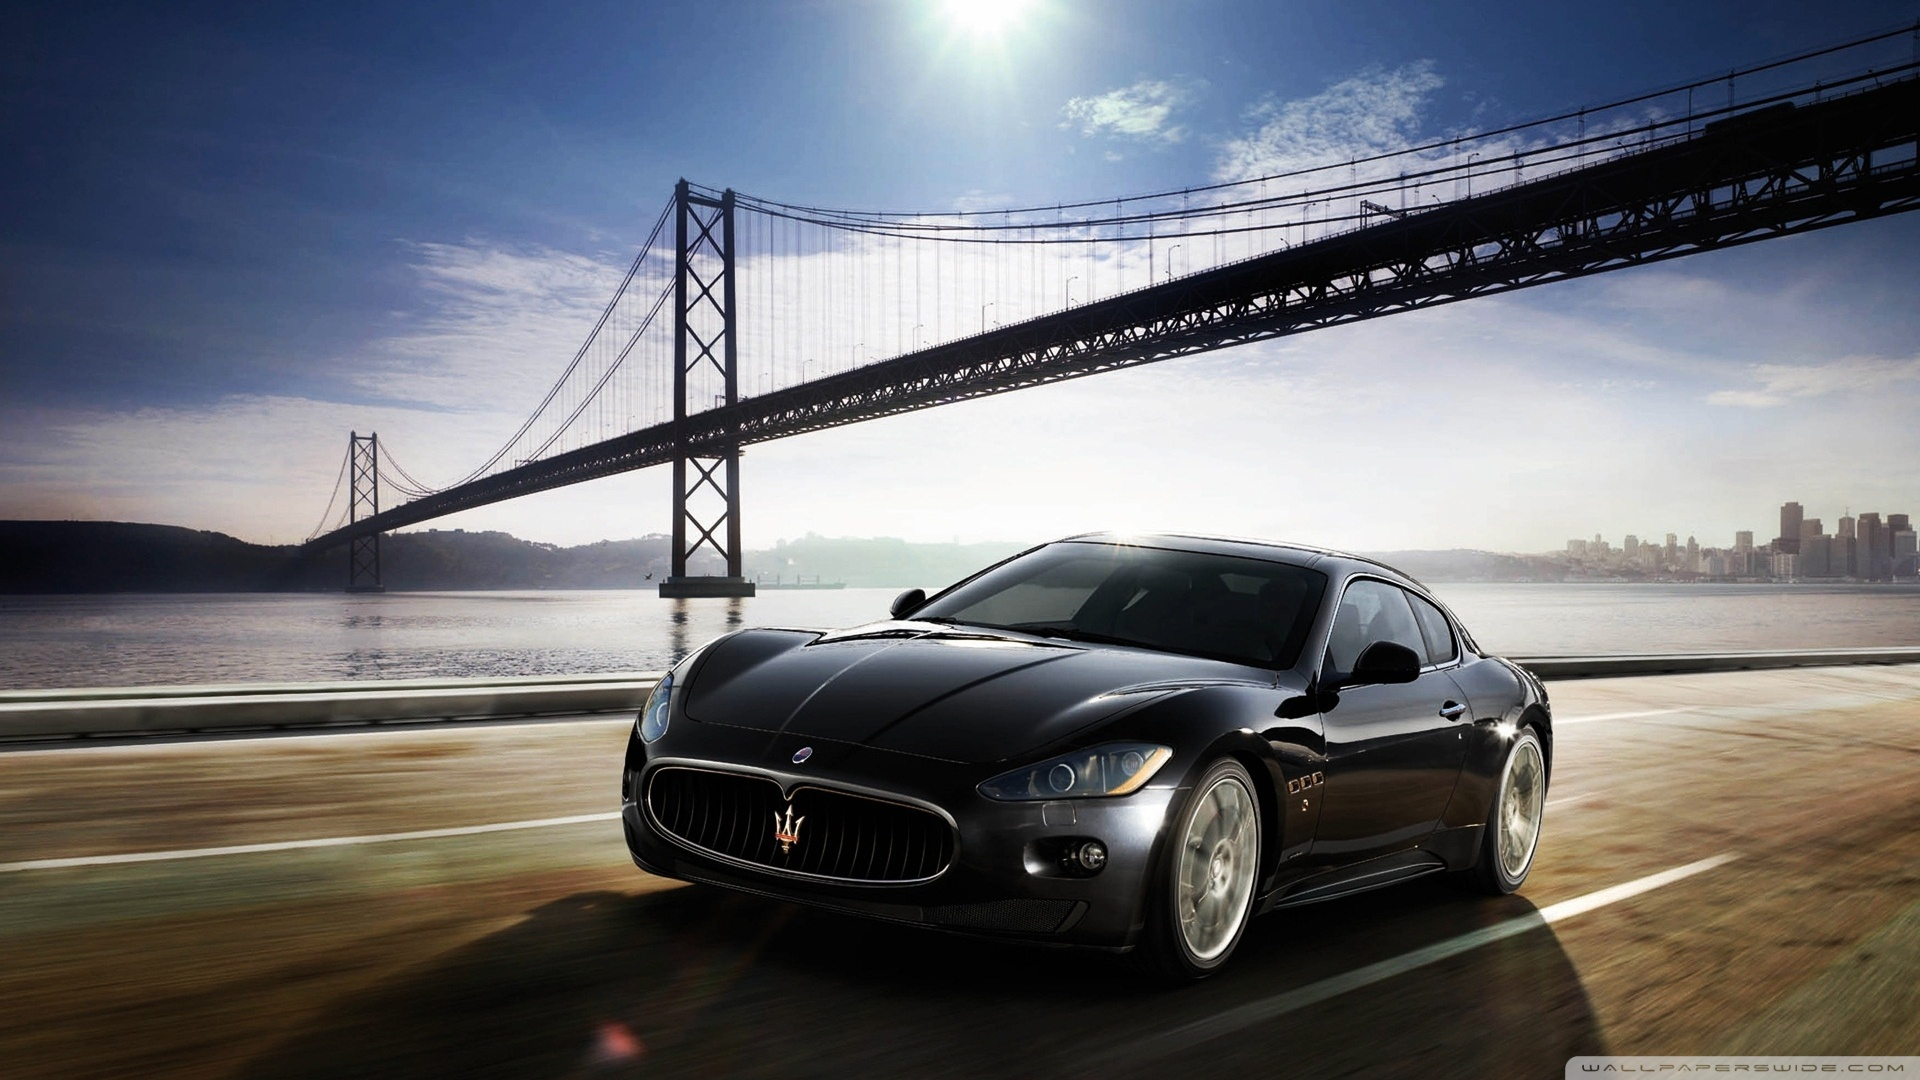 Maserati Granturismo Wallpaper In Games